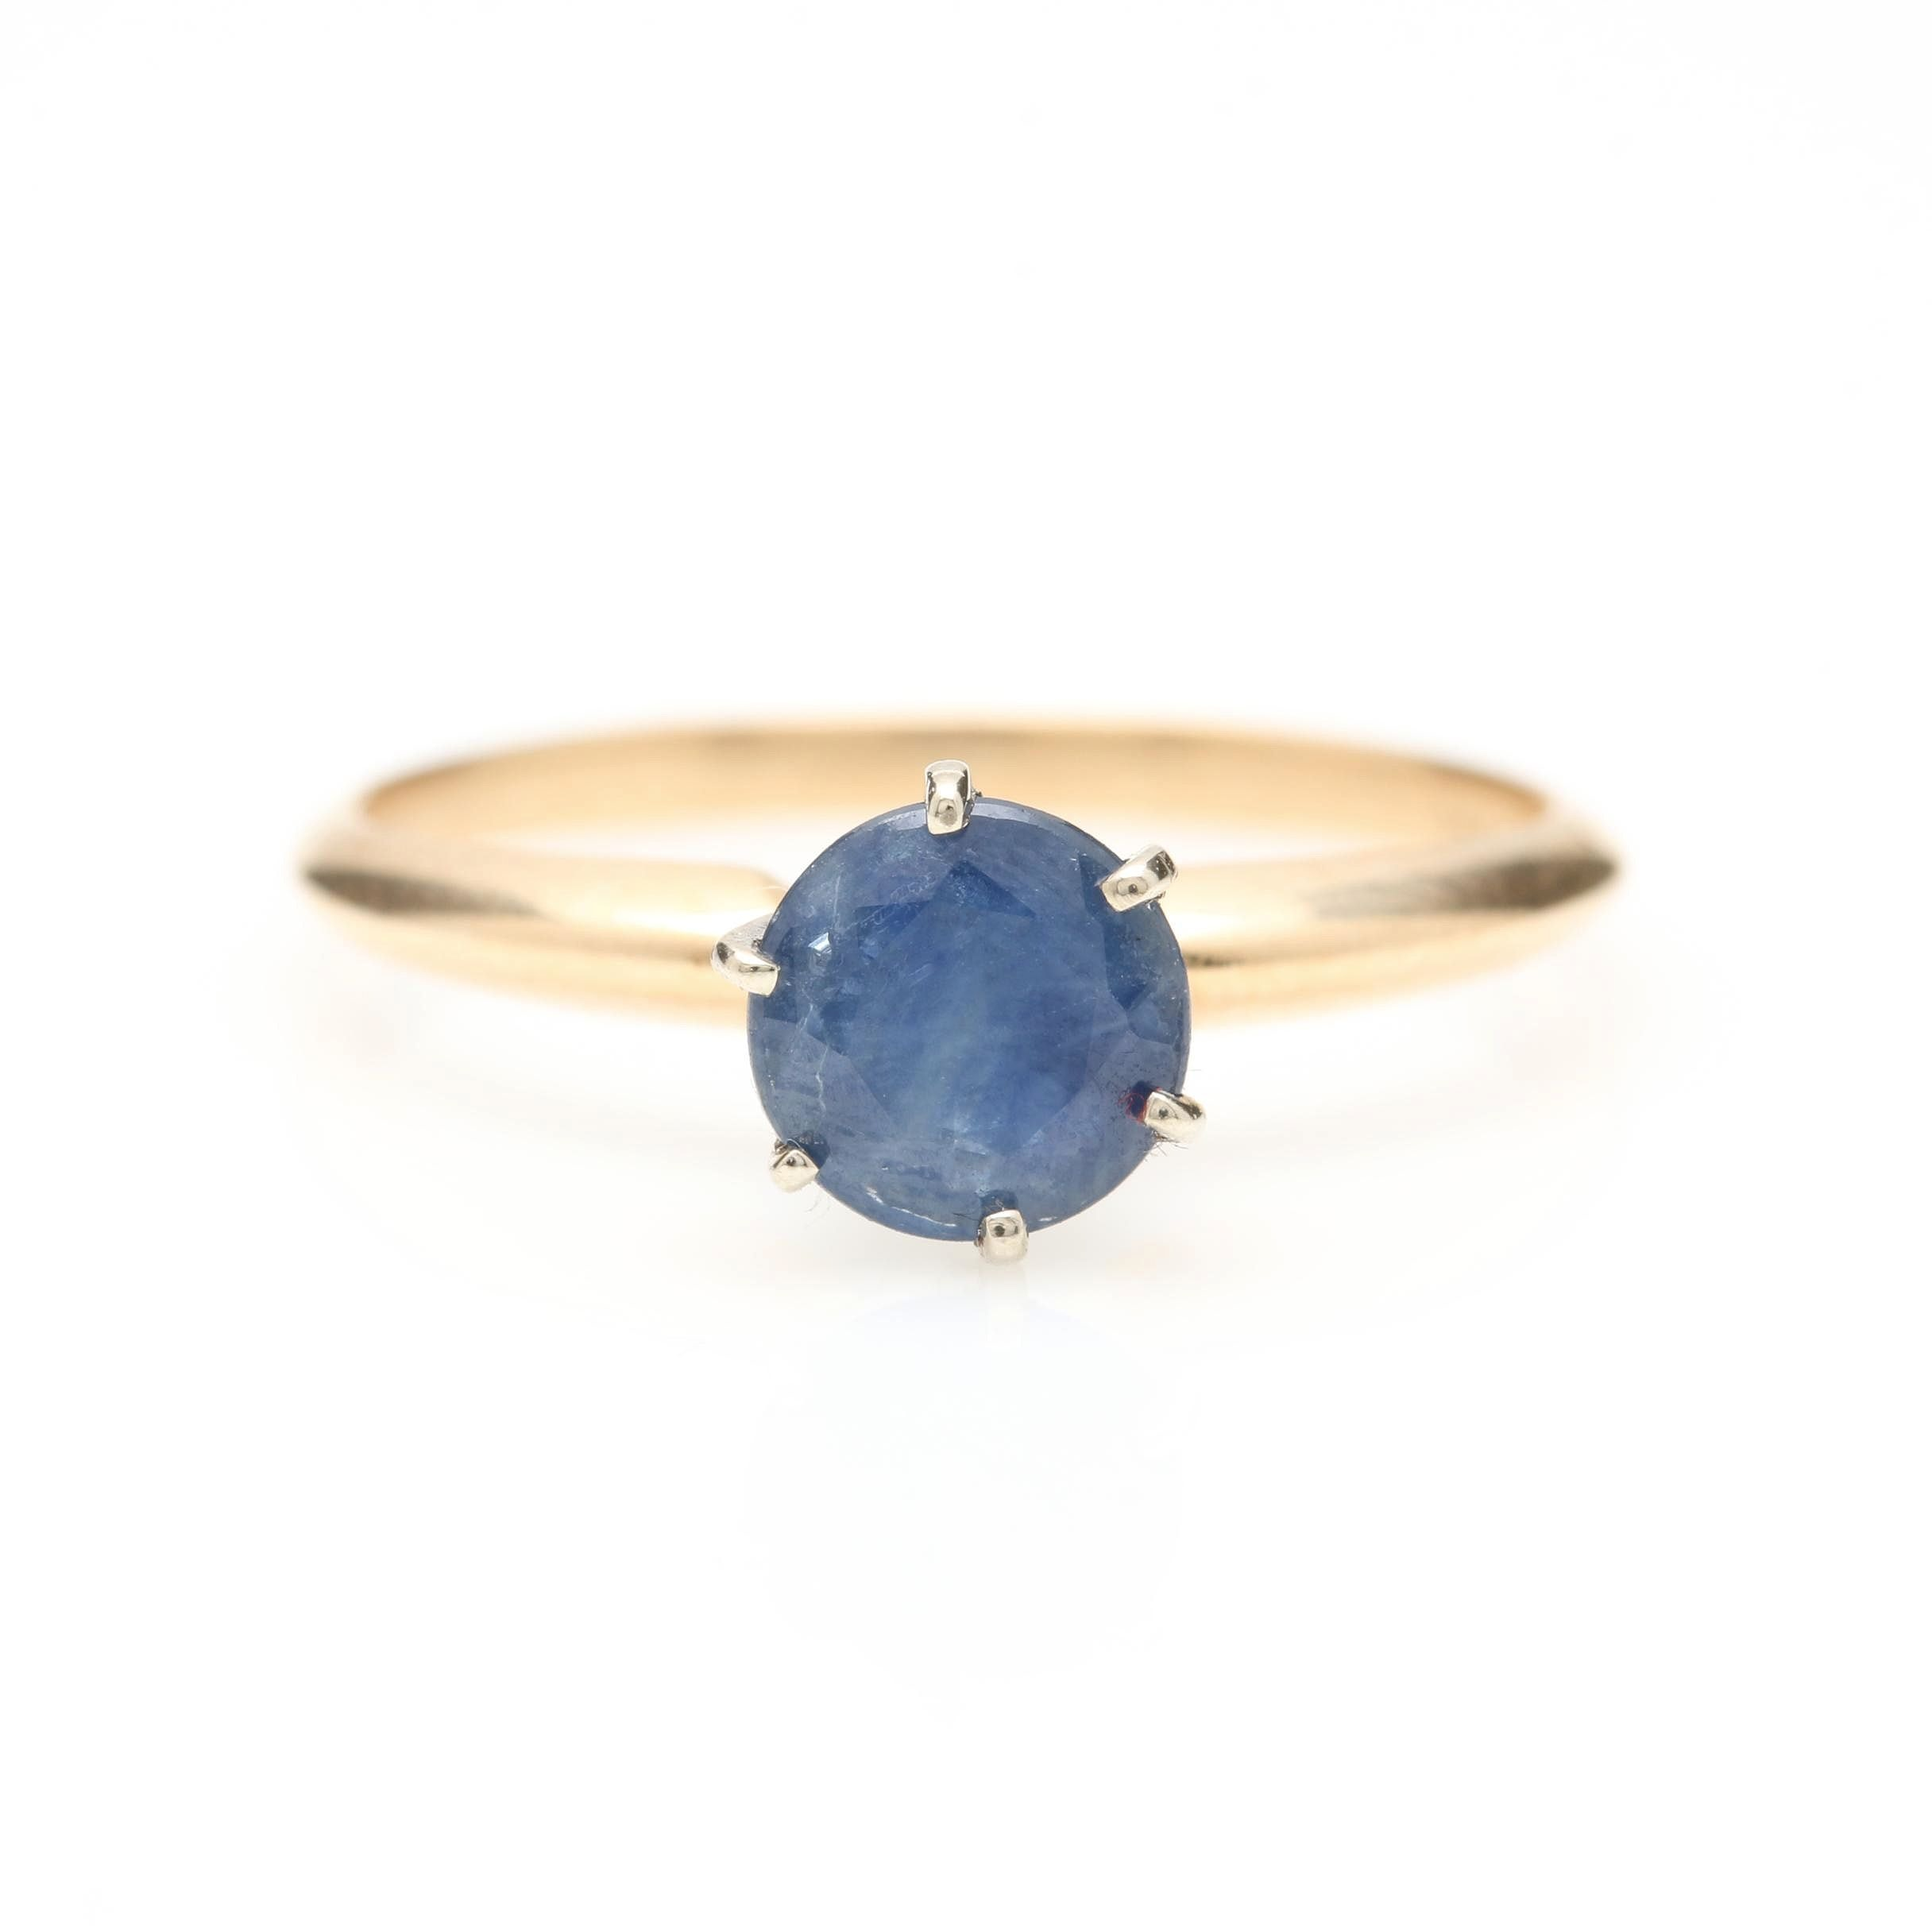 14K Yellow Gold Sapphire Solitaire Ring With White Gold Head